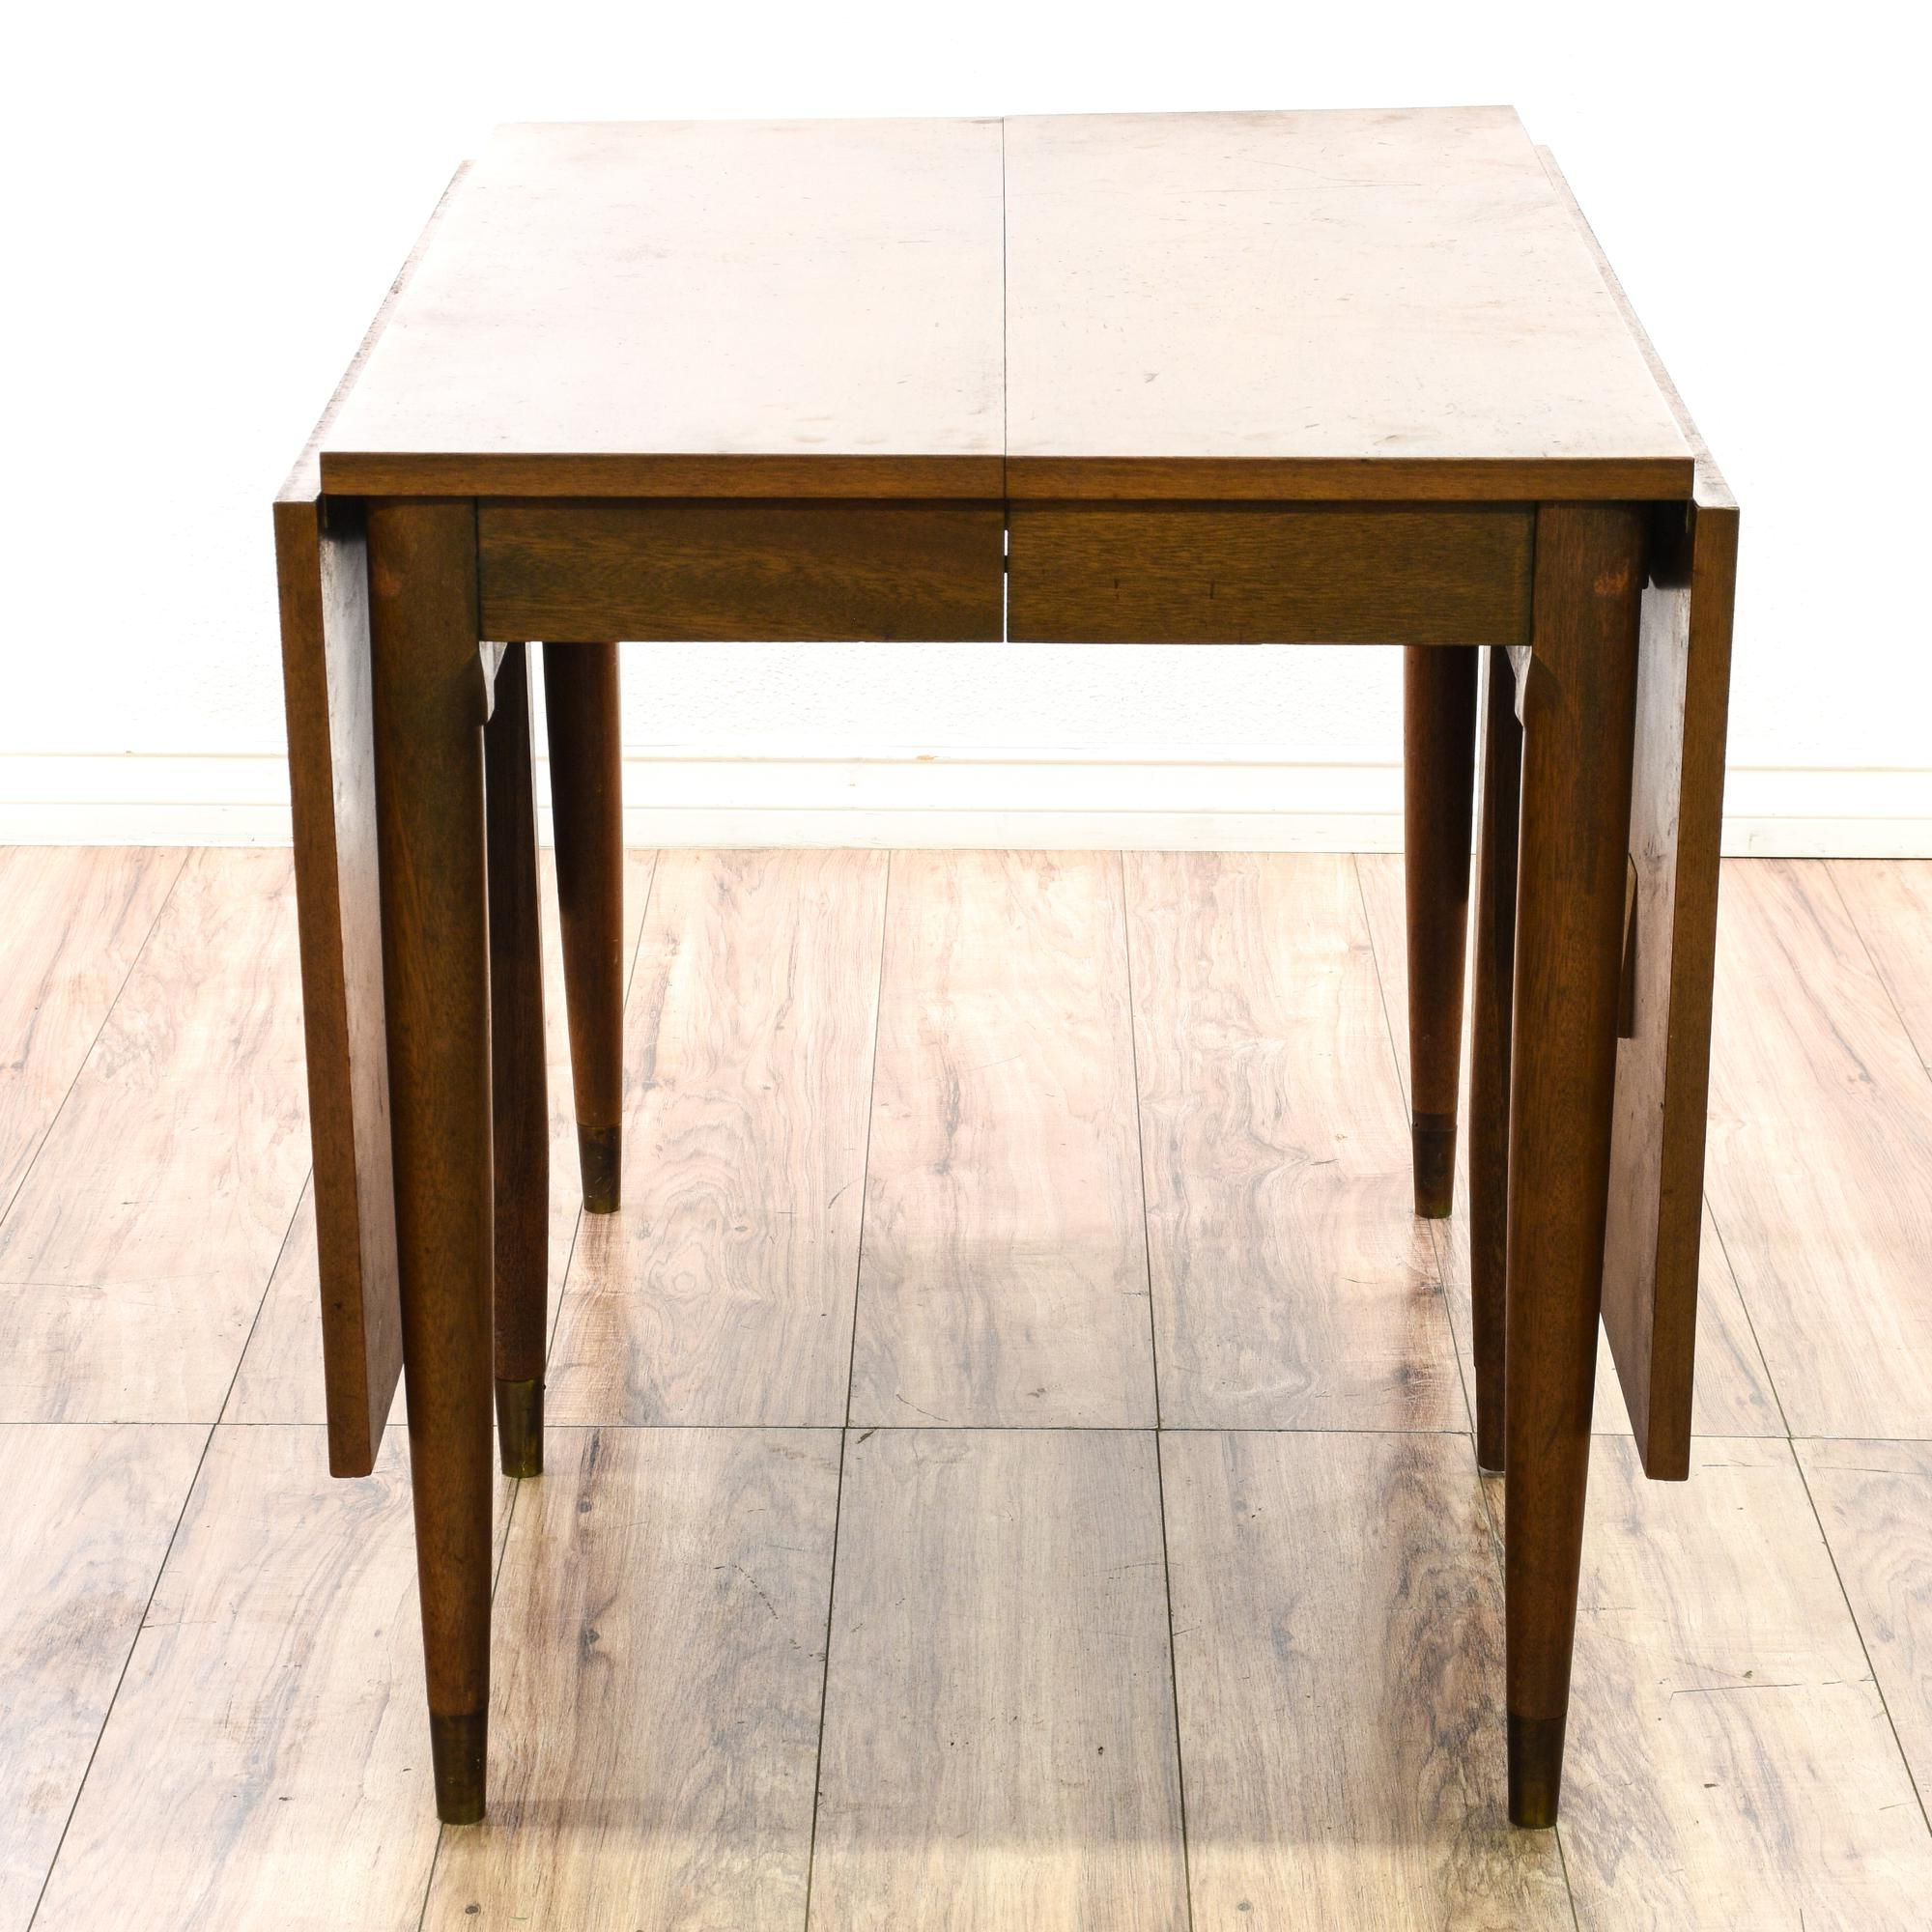 This Dining Table Is Featured In A Solid Wood With A Glossy Within Famous Mid Century Rectangular Top Dining Tables With Wood Legs (View 18 of 25)